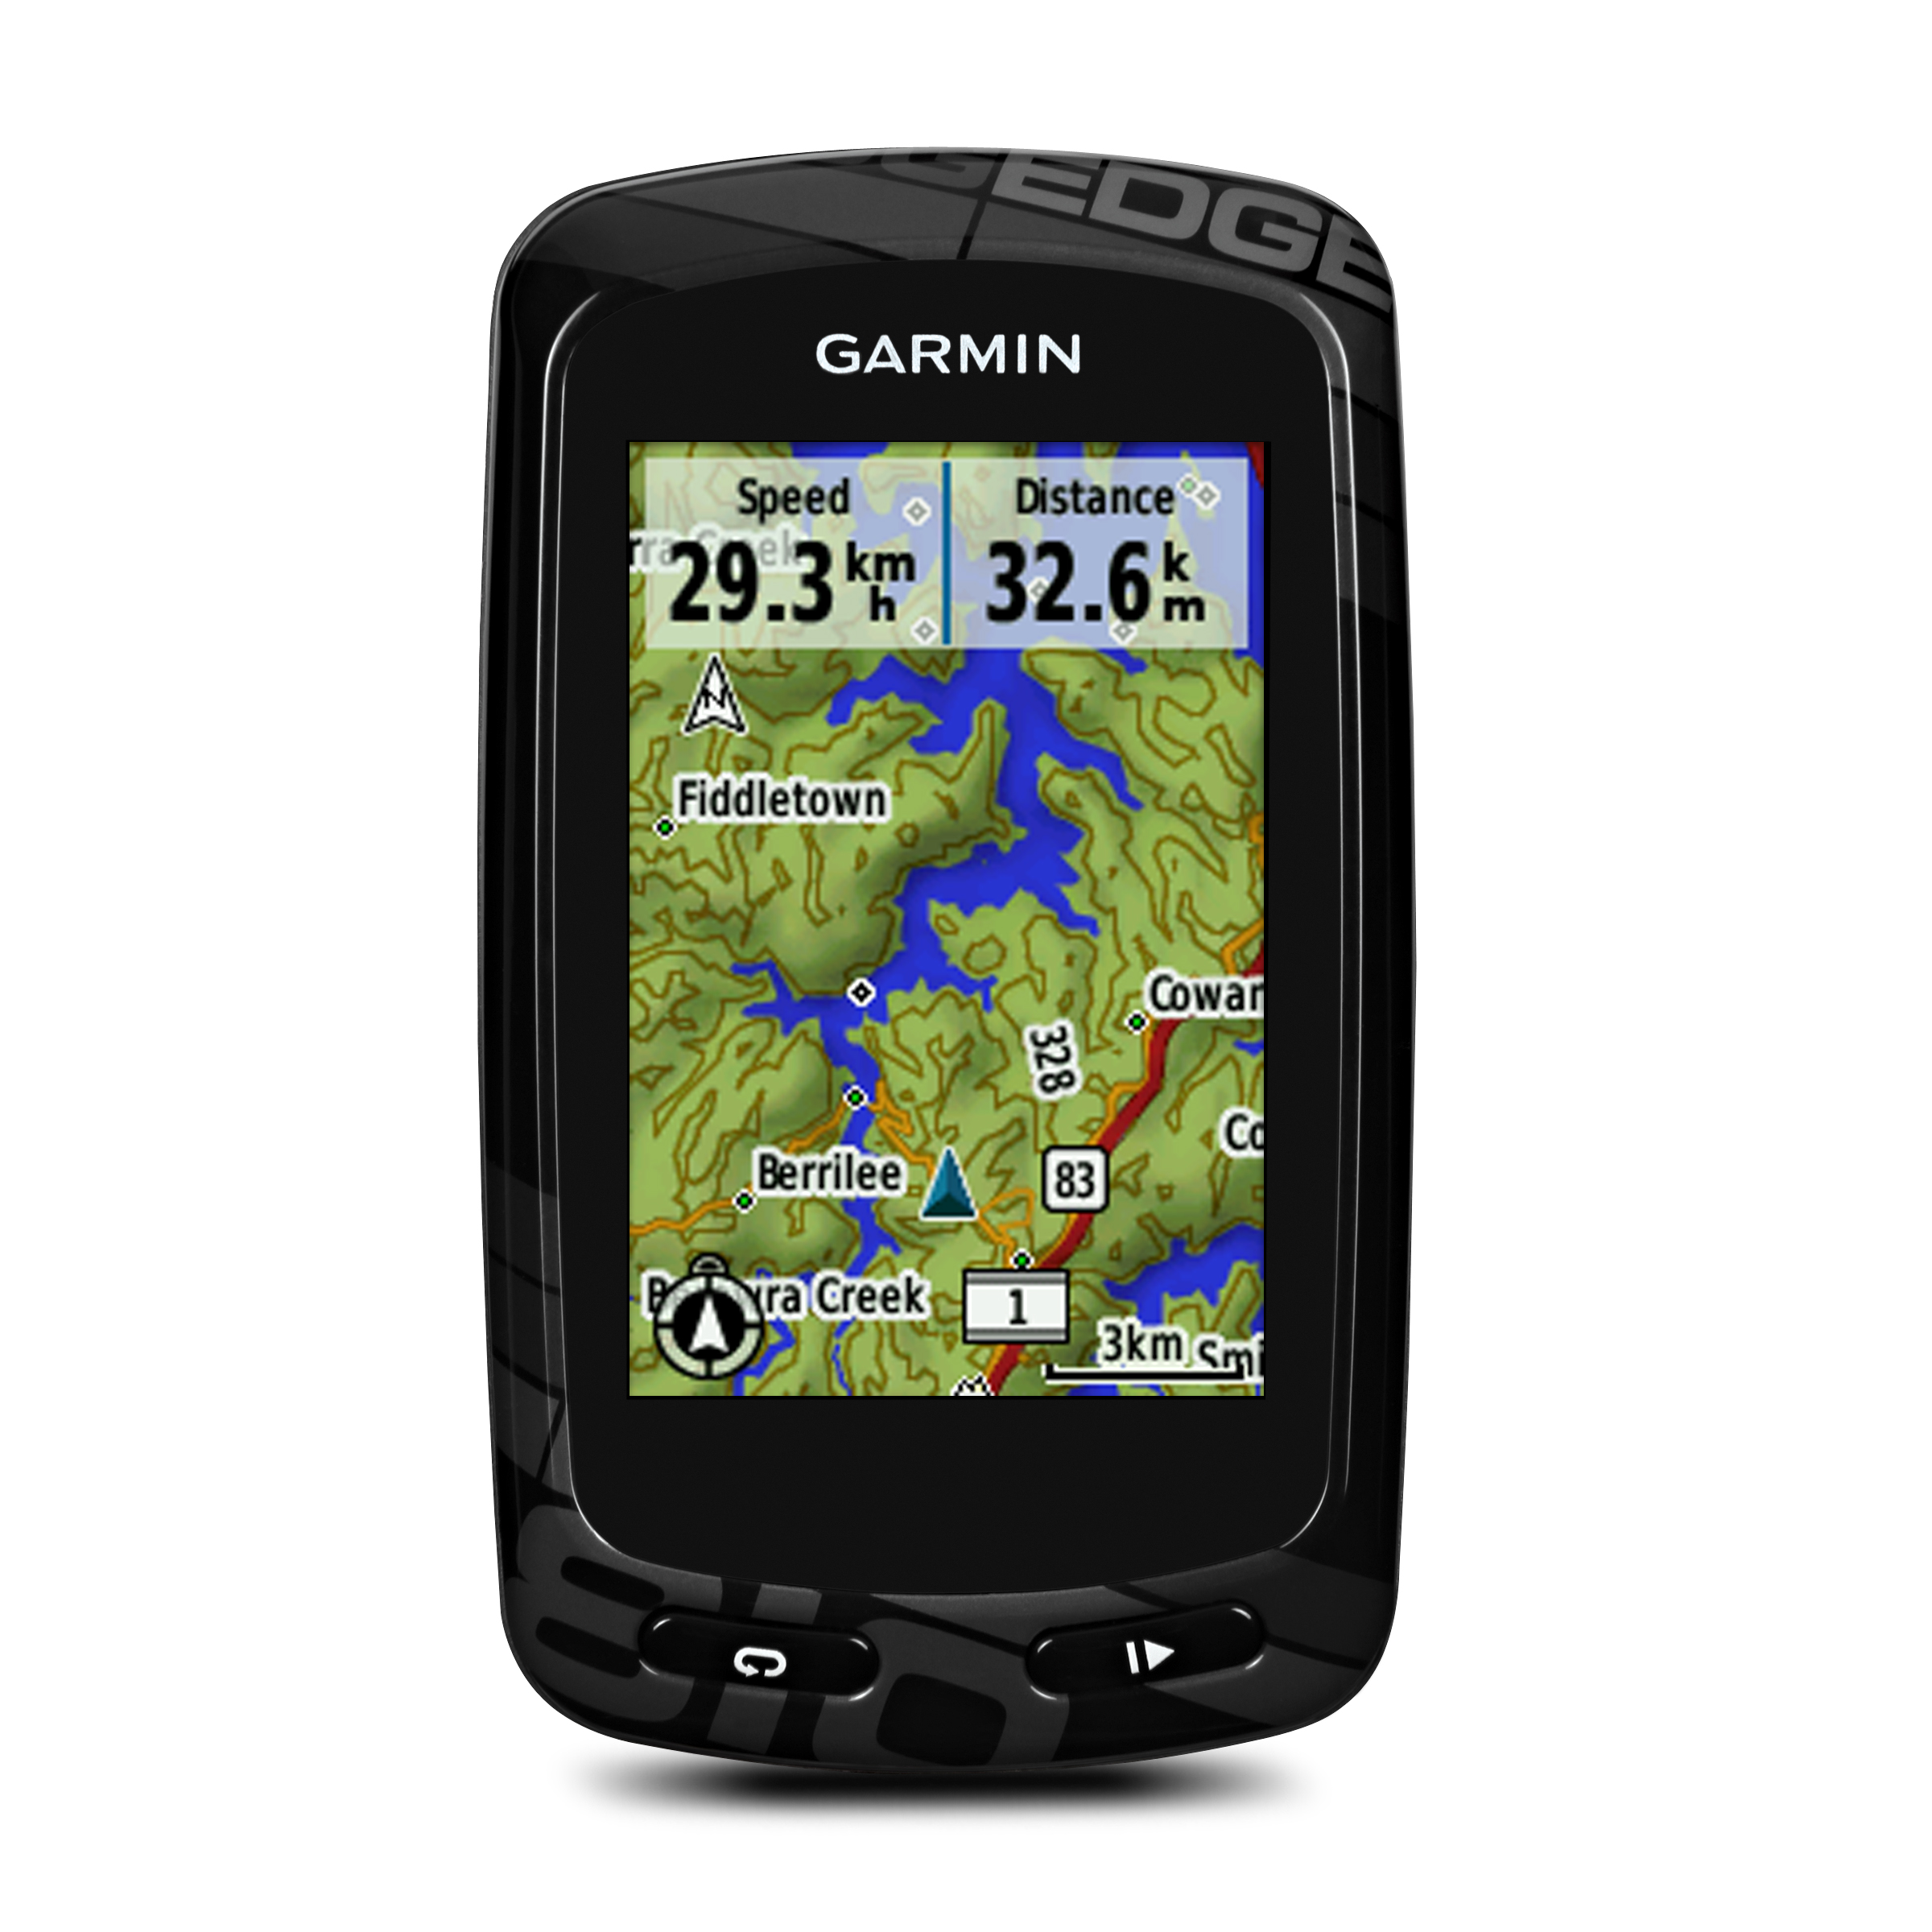 Garmin Edge 810 Most Sophisticated Bike Computer In The